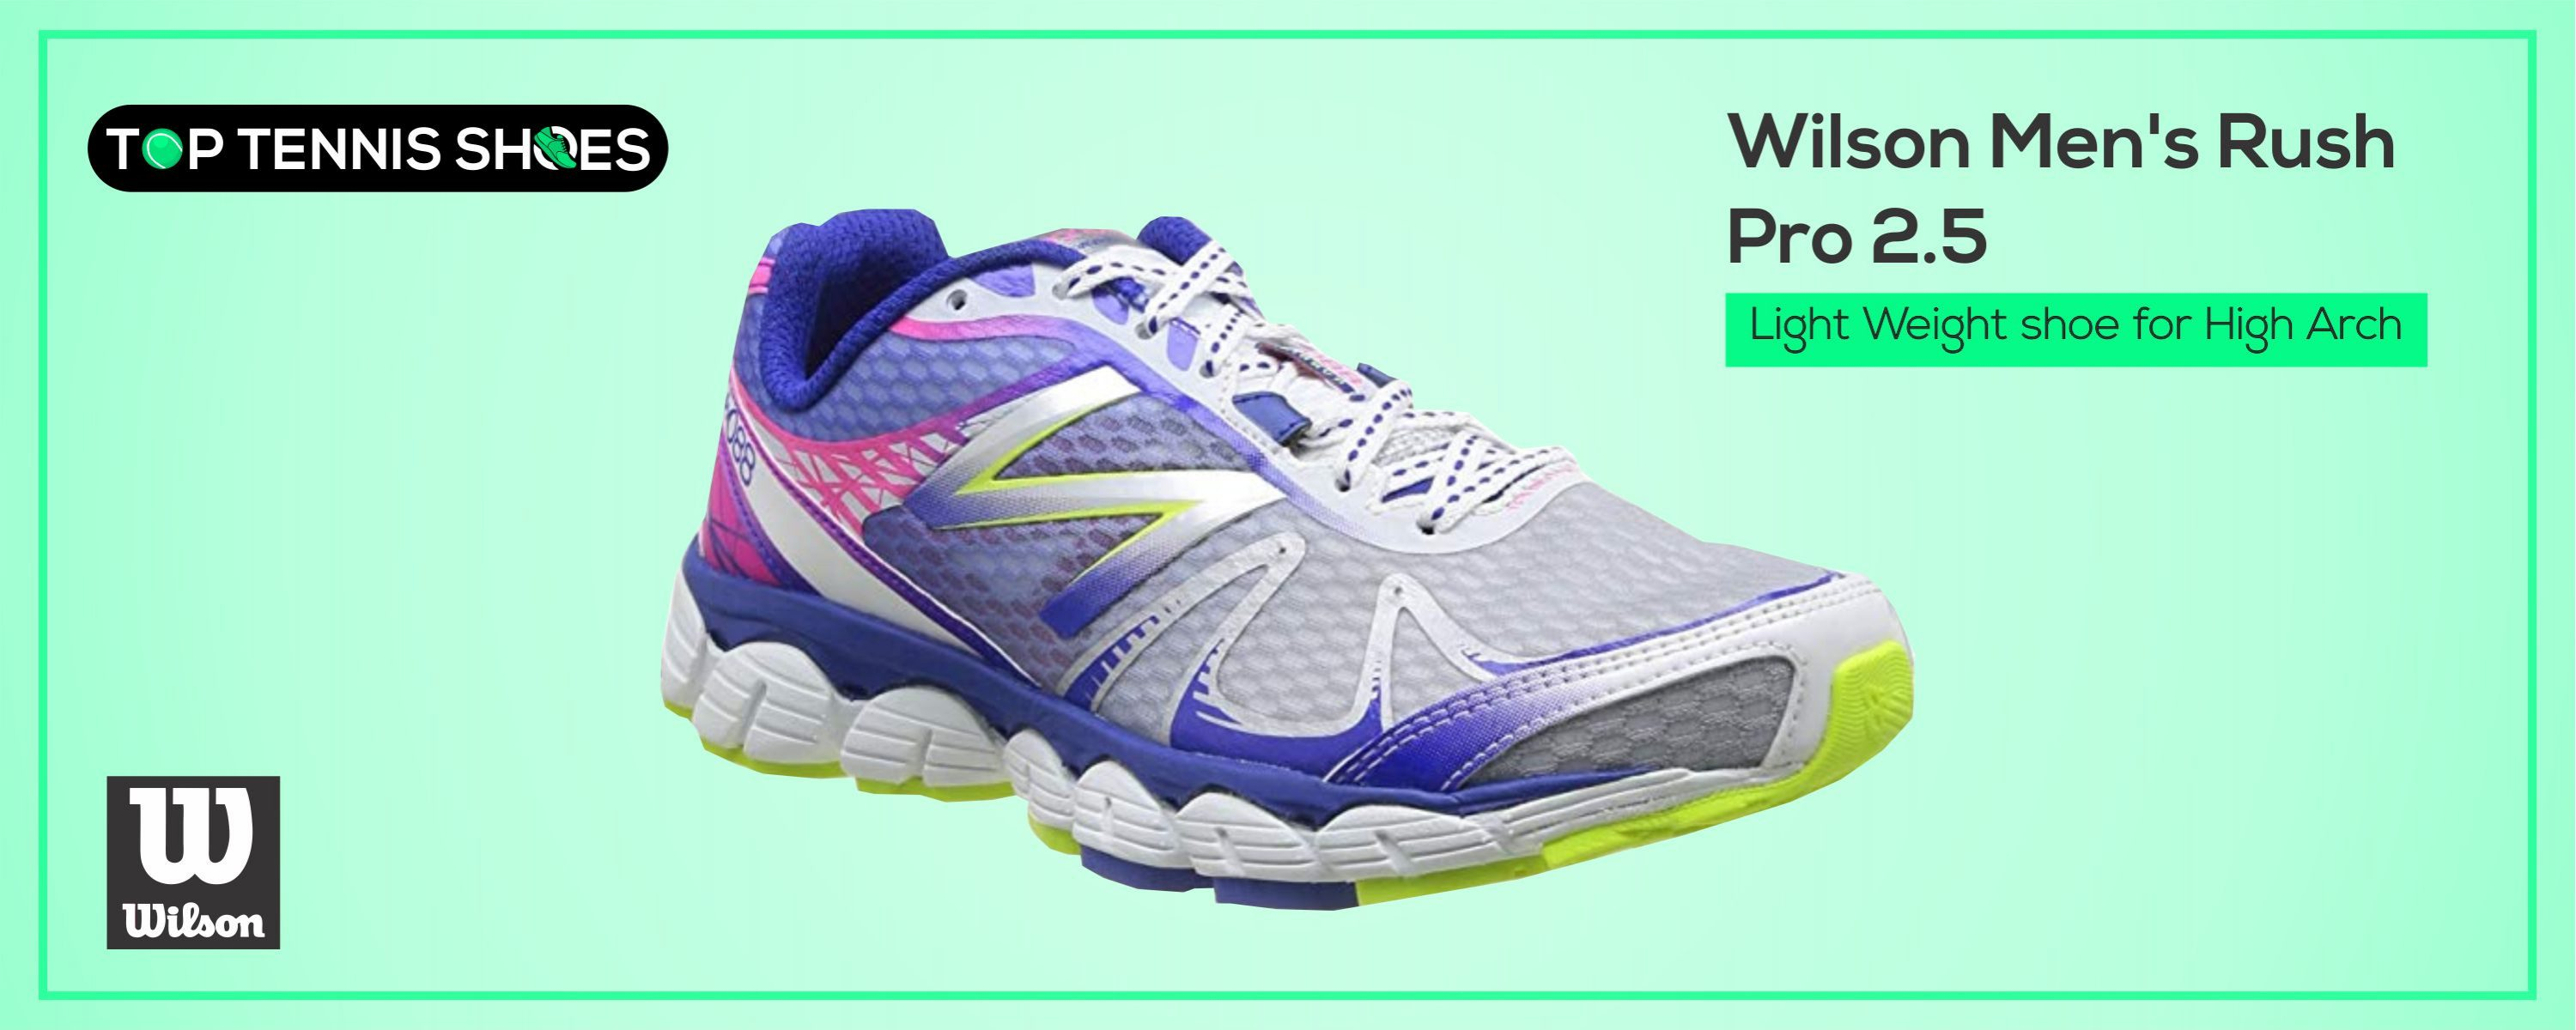 Top Rated Tennis Shoes for High Arches